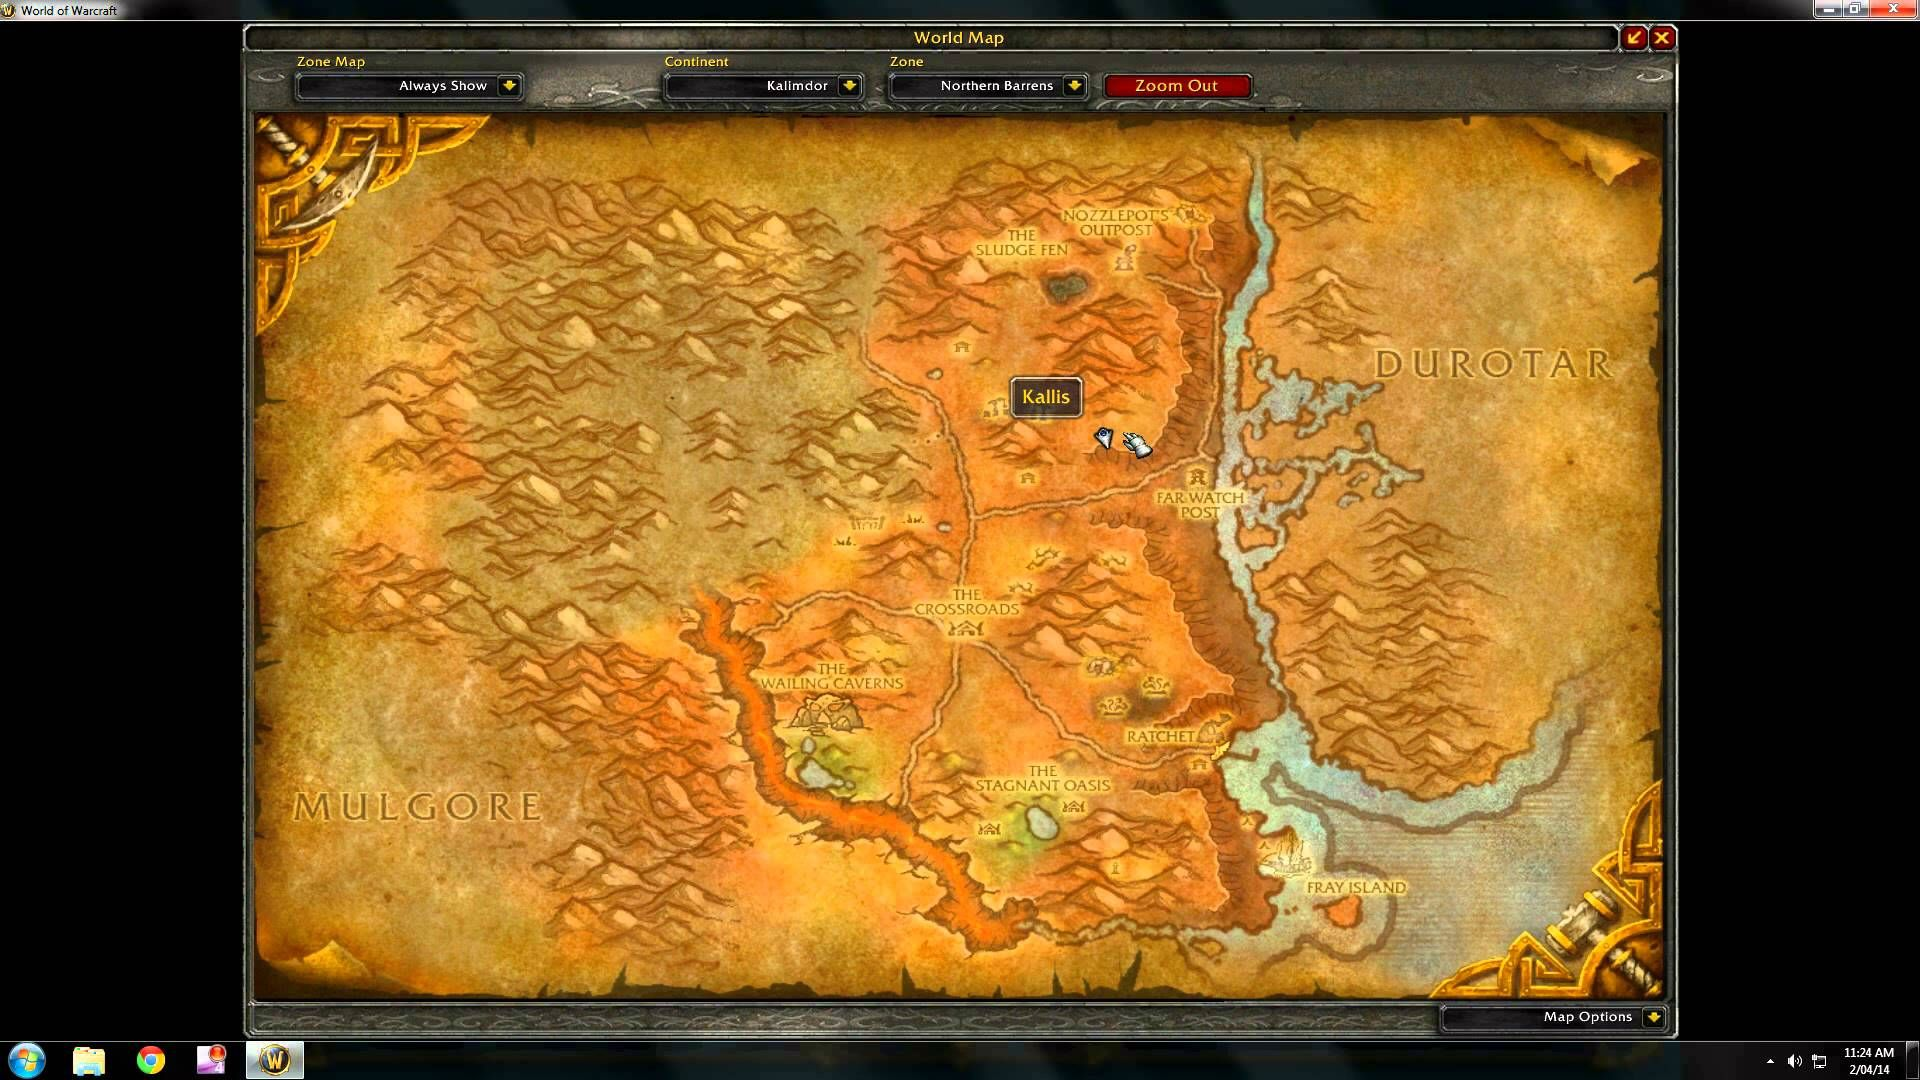 World Of Warcraft Rare Hunter Pet Locations Northern Barrens Wow Leveling Guide For All Wow Players World Of Warcraft Warcraft Pets